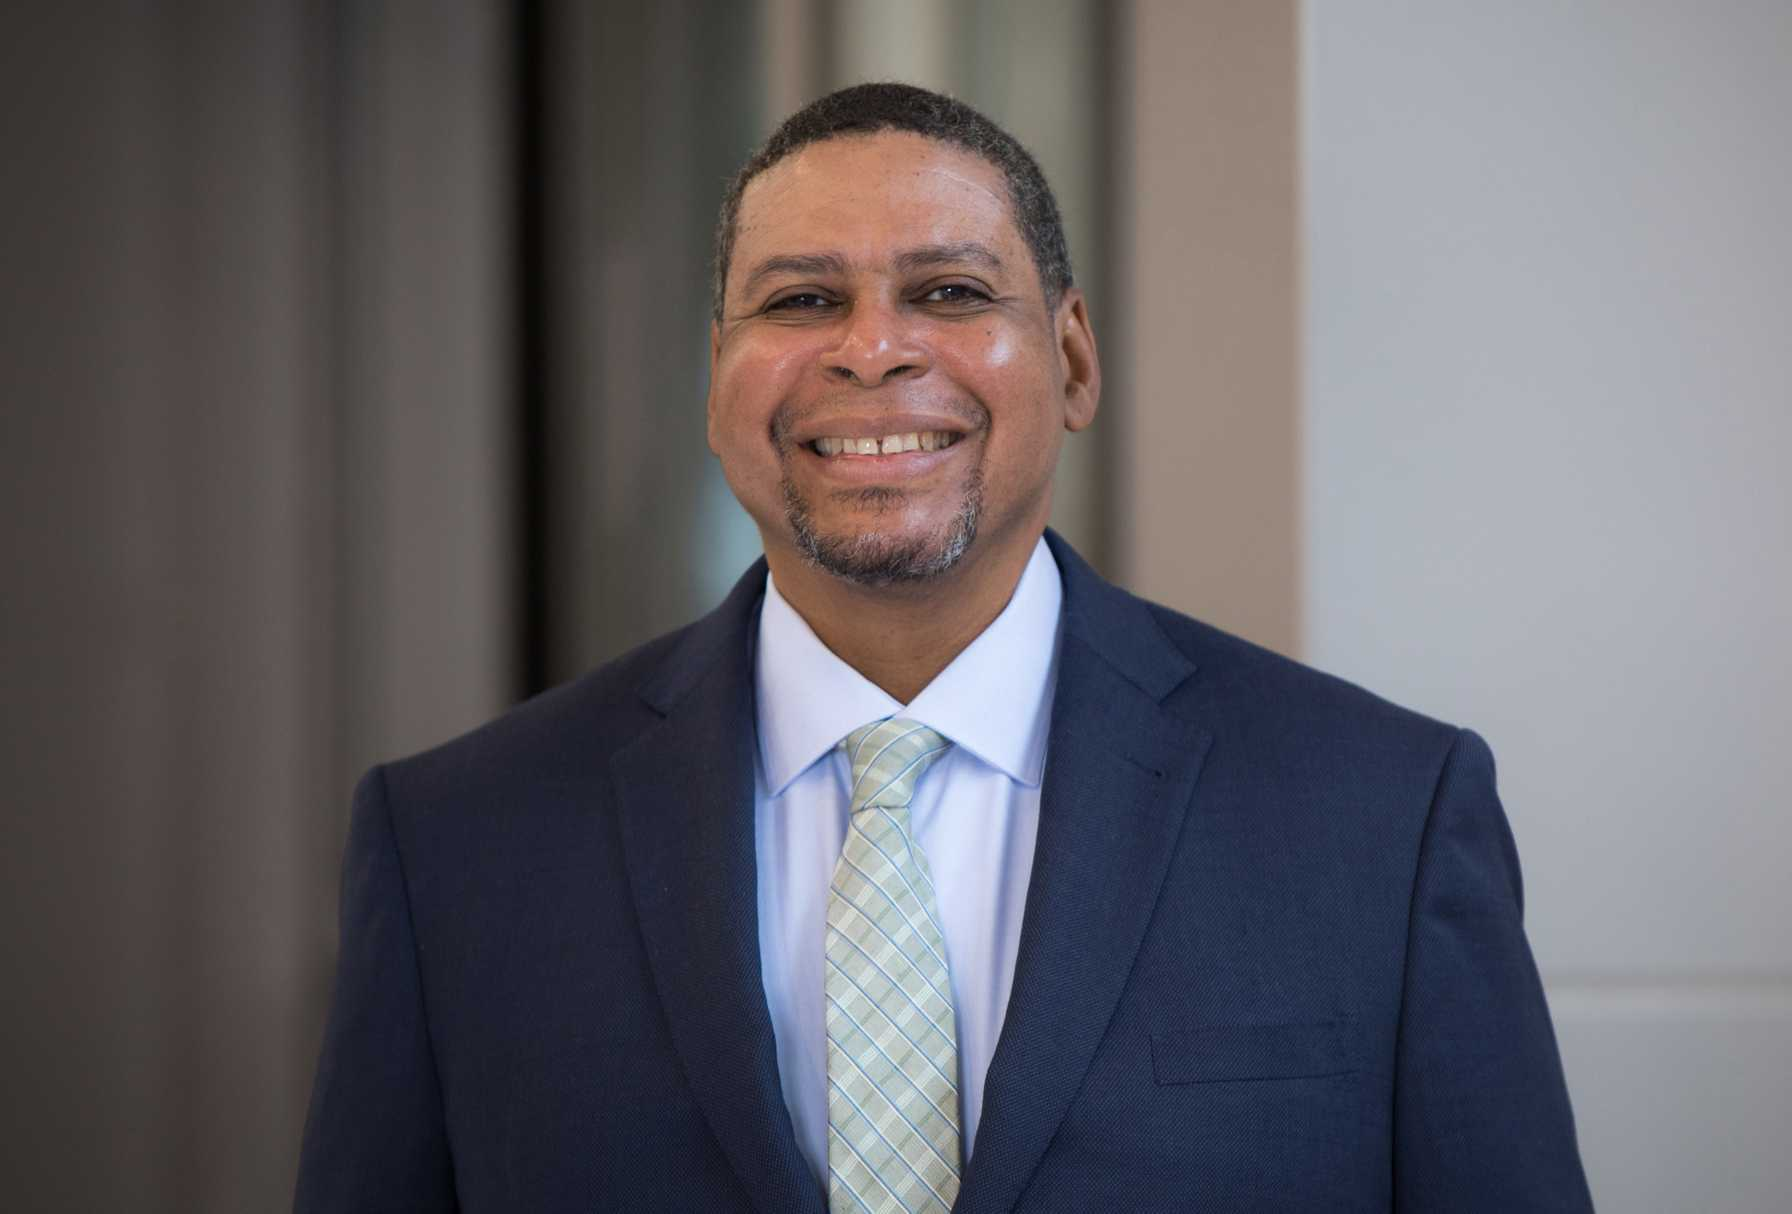 Carlos J. Rodriguez, MD, MPH, awarded several research grants and principal investigator appointments